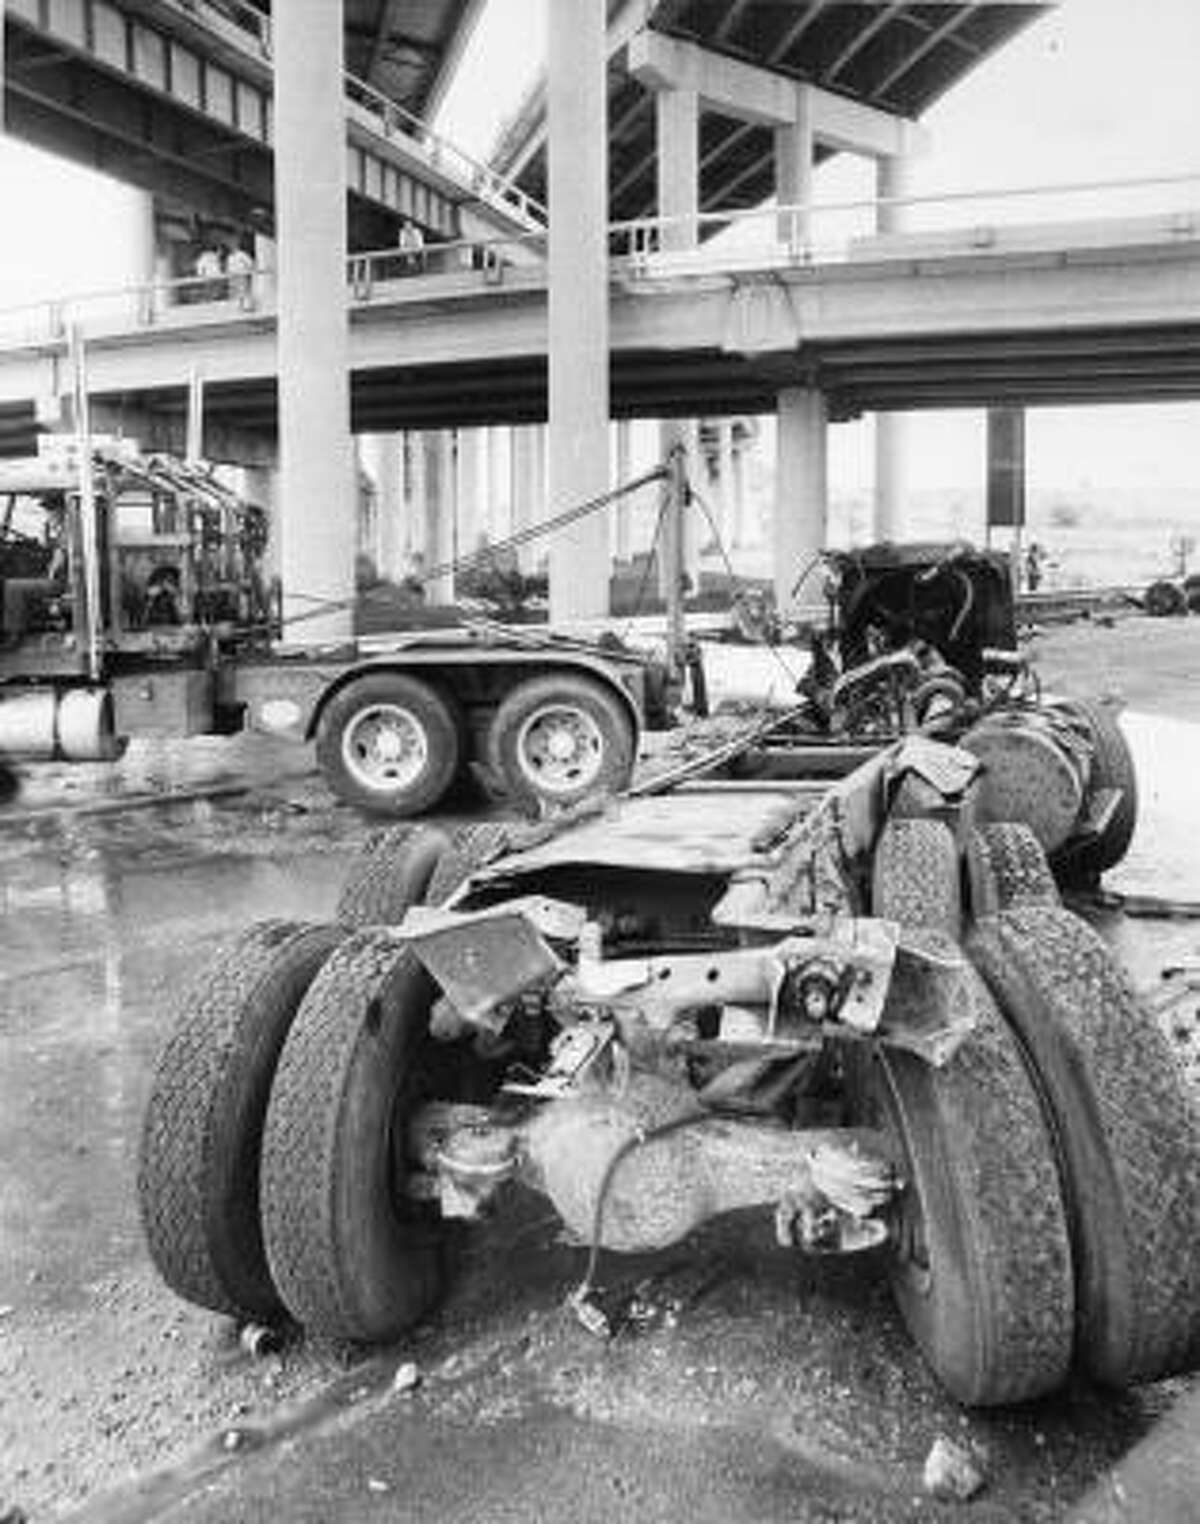 This photo shows the ammonia truck's chassis and vehicle parts being hauled away after the fatal accident and chemical spill of May, 11, 1976.